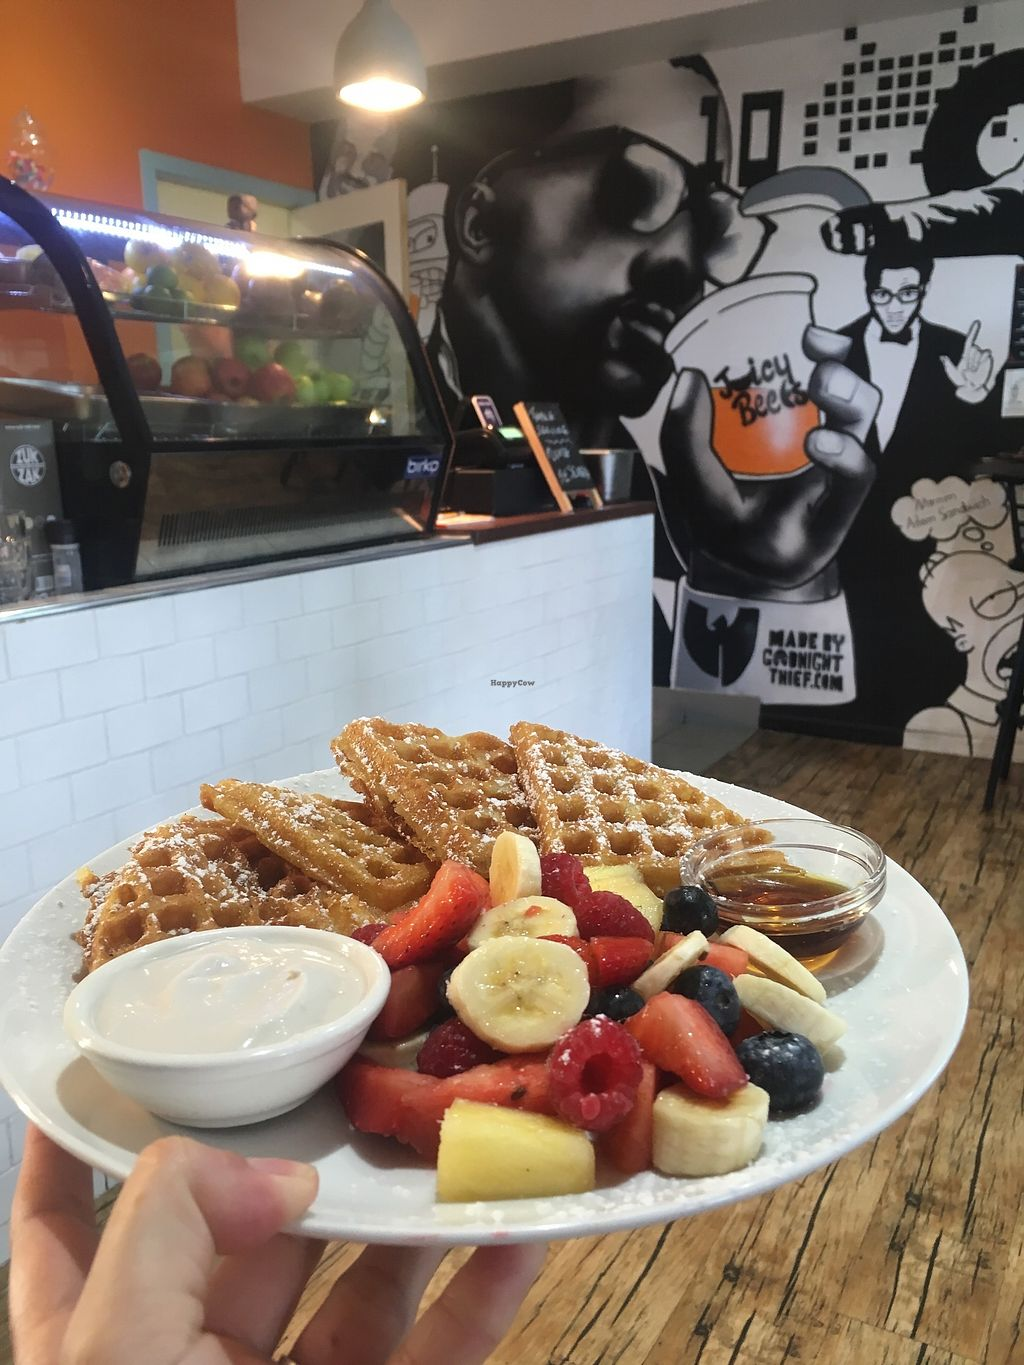 """Photo of Waffle on Cairns  by <a href=""""/members/profile/jojoinbrighton"""">jojoinbrighton</a> <br/>Waffles with fruit, syrup, and coconut cream <br/> August 5, 2017  - <a href='/contact/abuse/image/97907/288942'>Report</a>"""